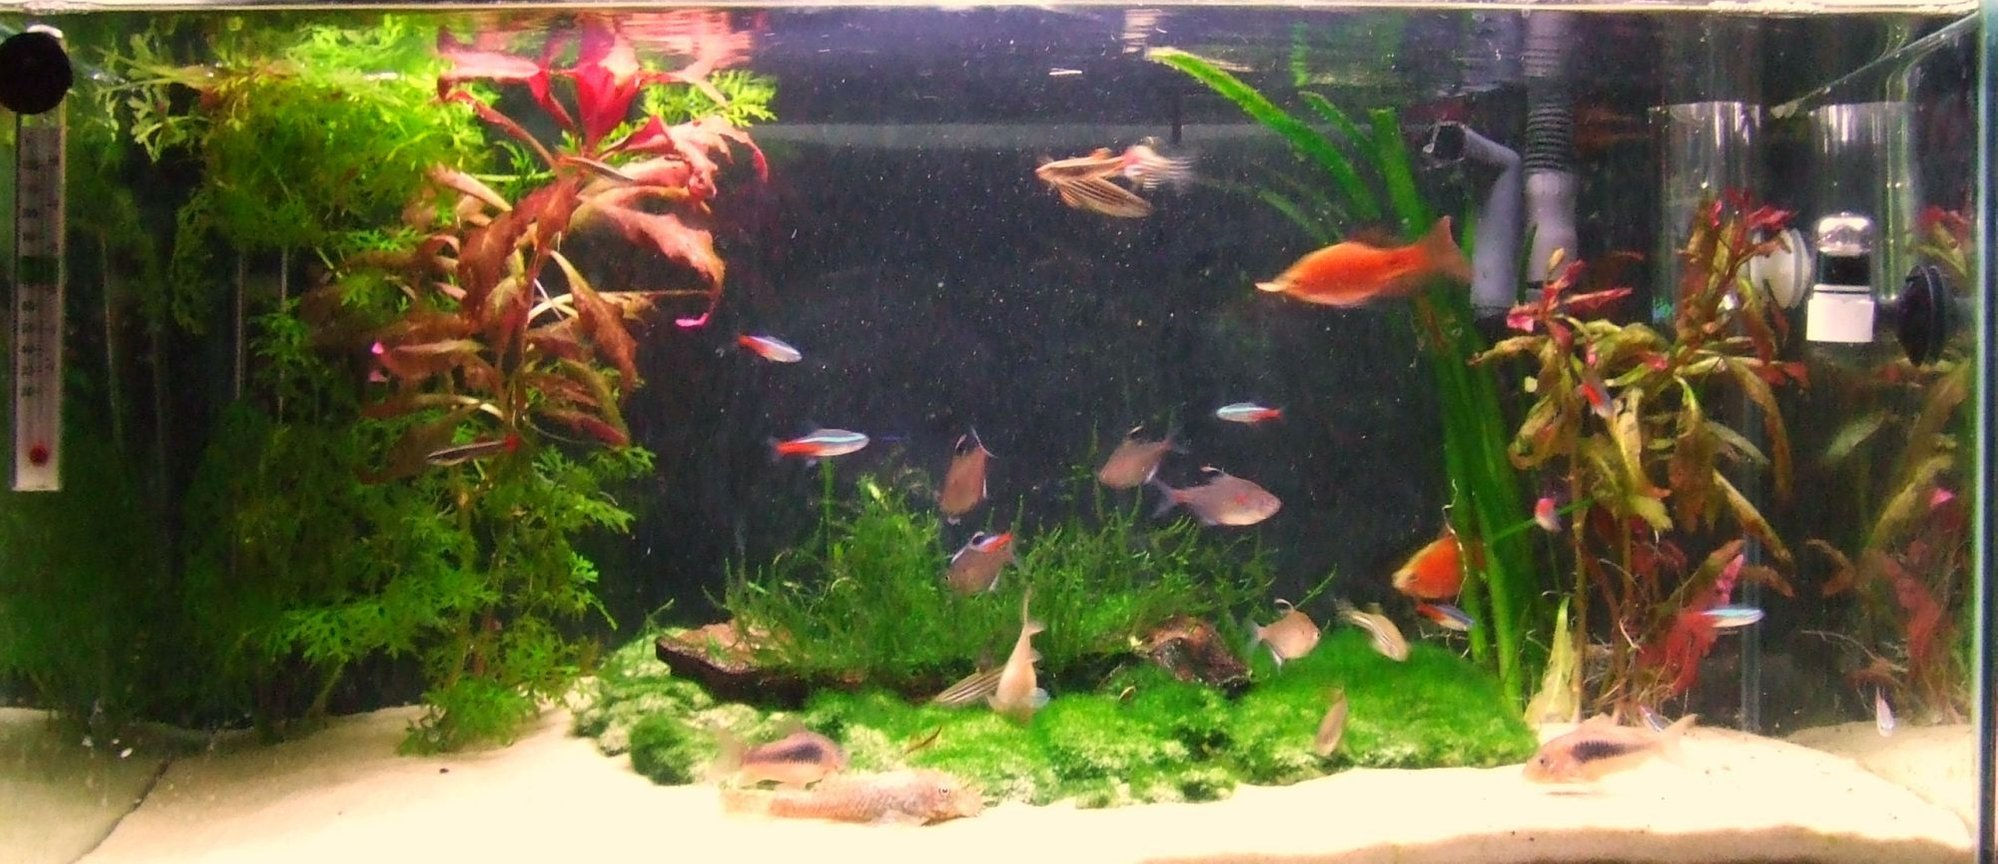 11 gallons planted tank (mostly live plants and fish) - My fish tank, Home to Over 30 fish :) Rate high :)